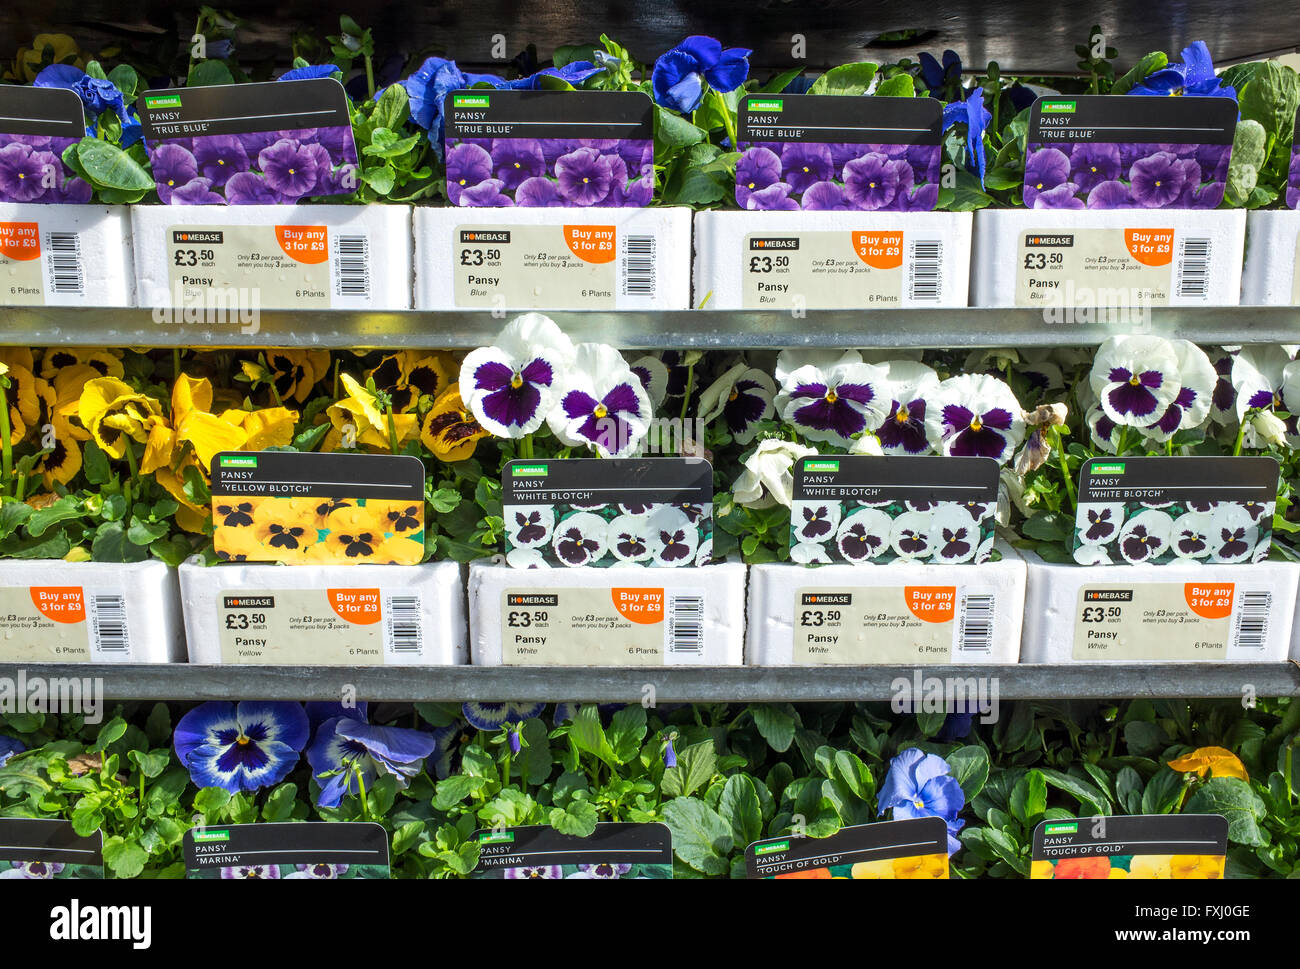 Pansies on sale at a garden centre - Stock Image